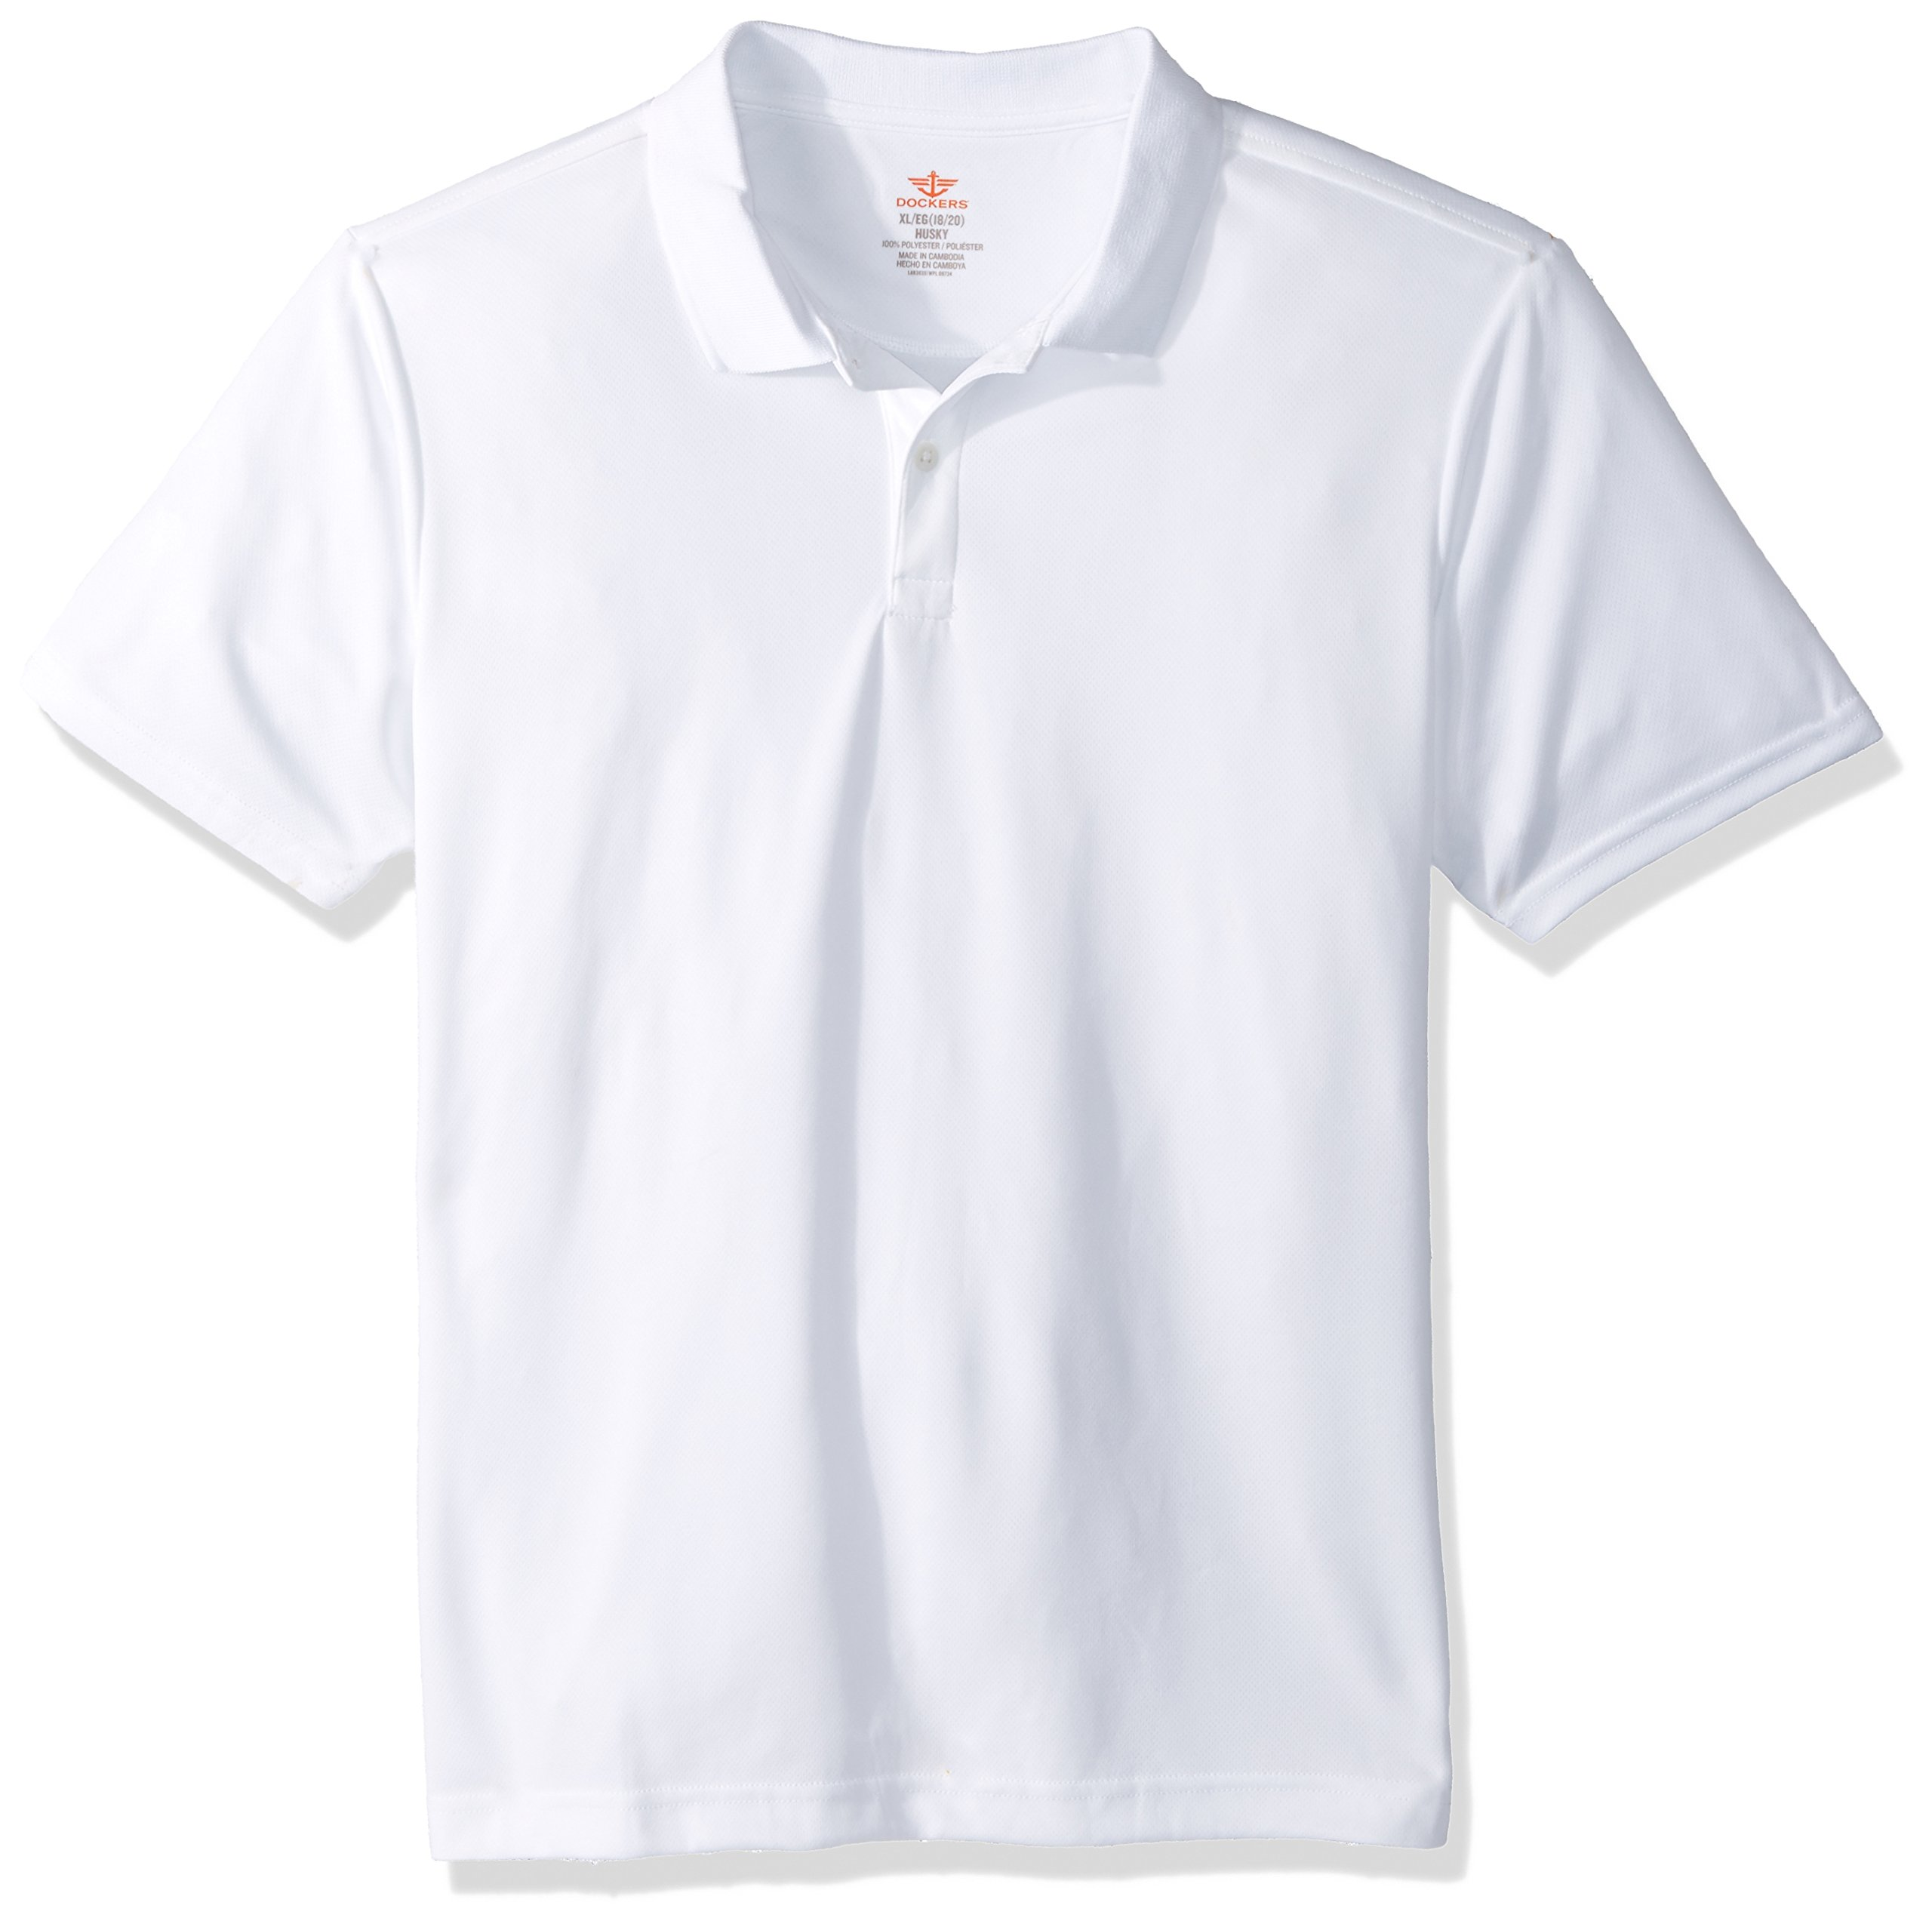 Dockers Big Boys' Uniform Short Sleeve Performance Polo, White, Medium/10/12